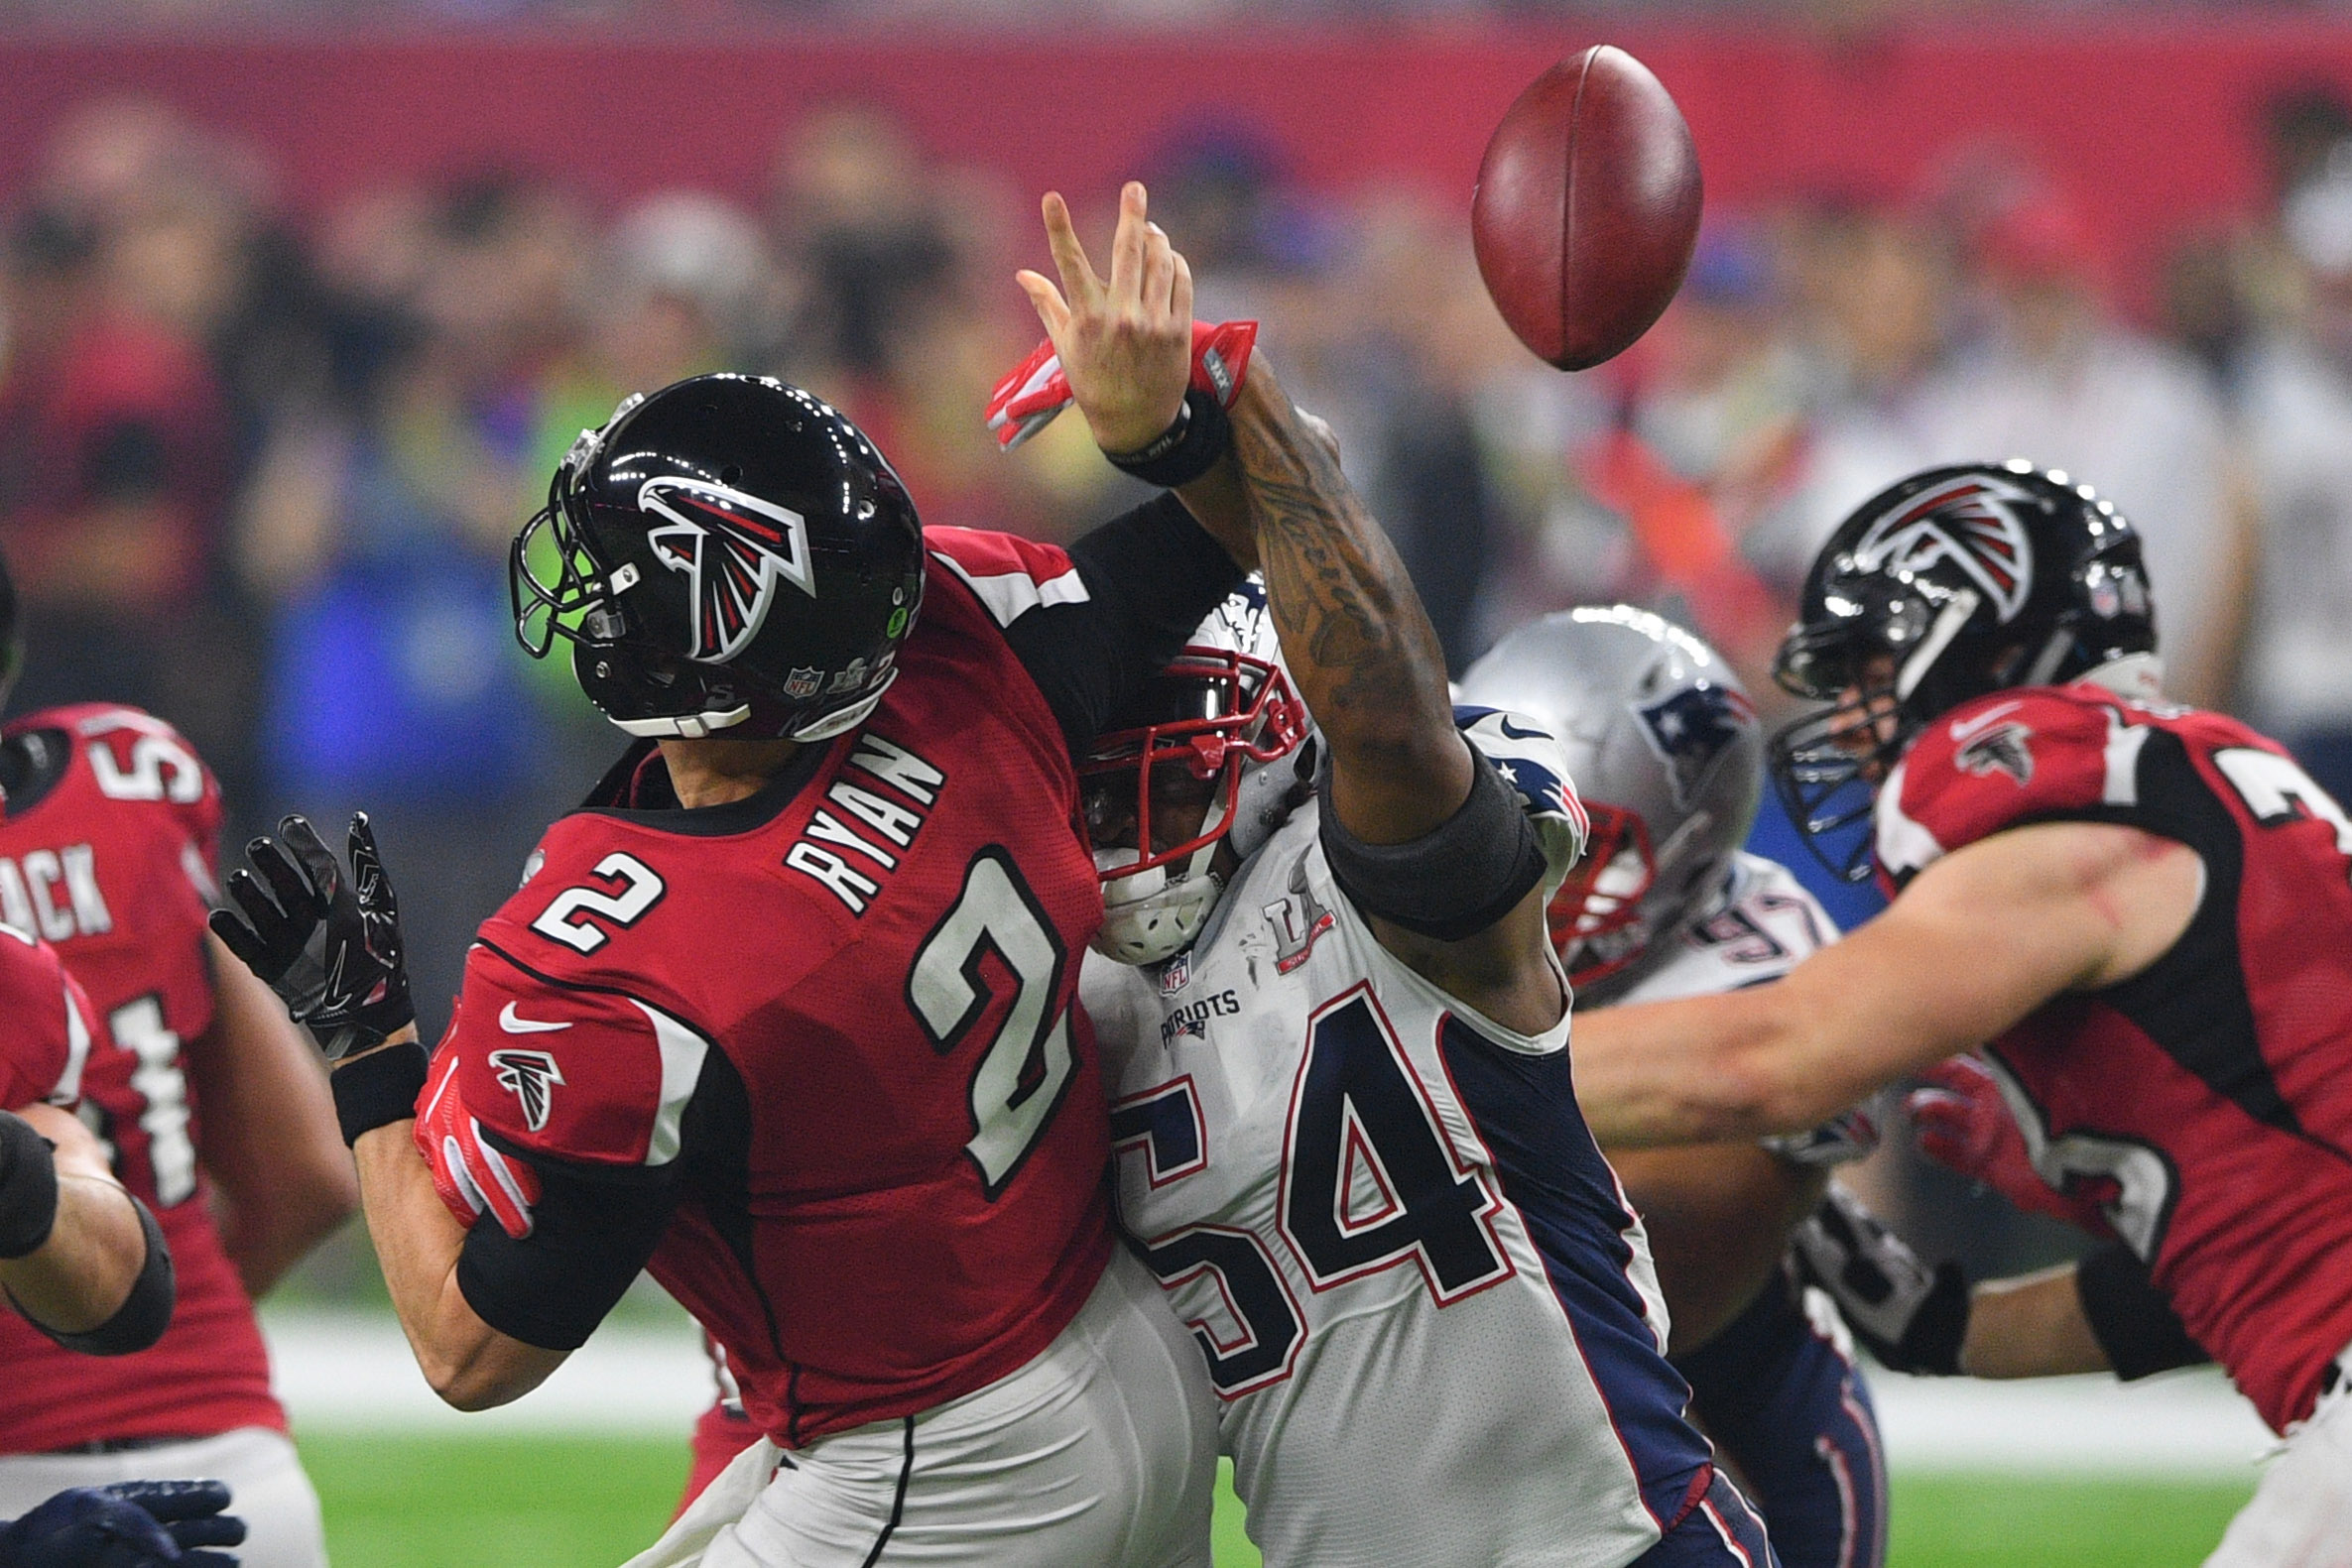 9862584-nfl-super-bowl-li-new-england-patriots-vs-atlanta-falcons